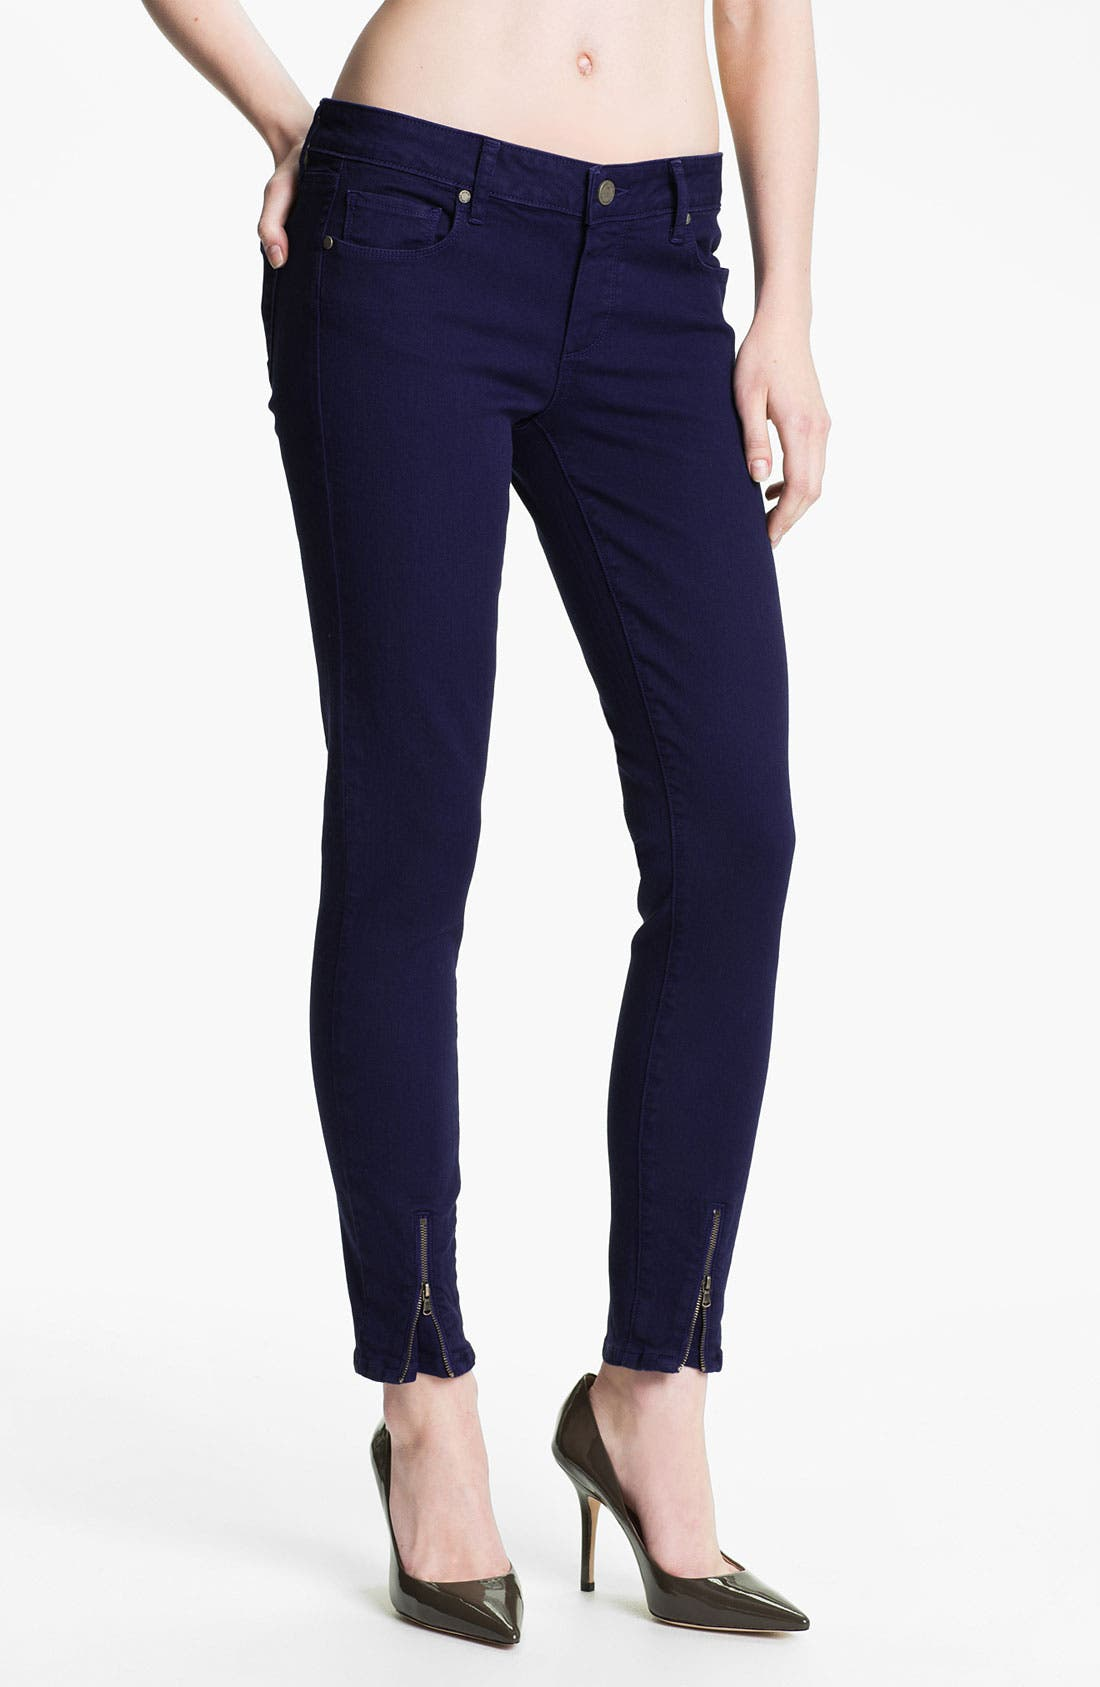 Main Image - Paige Denim Ankle Zip Skinny Jeans (Pacific Dusk)